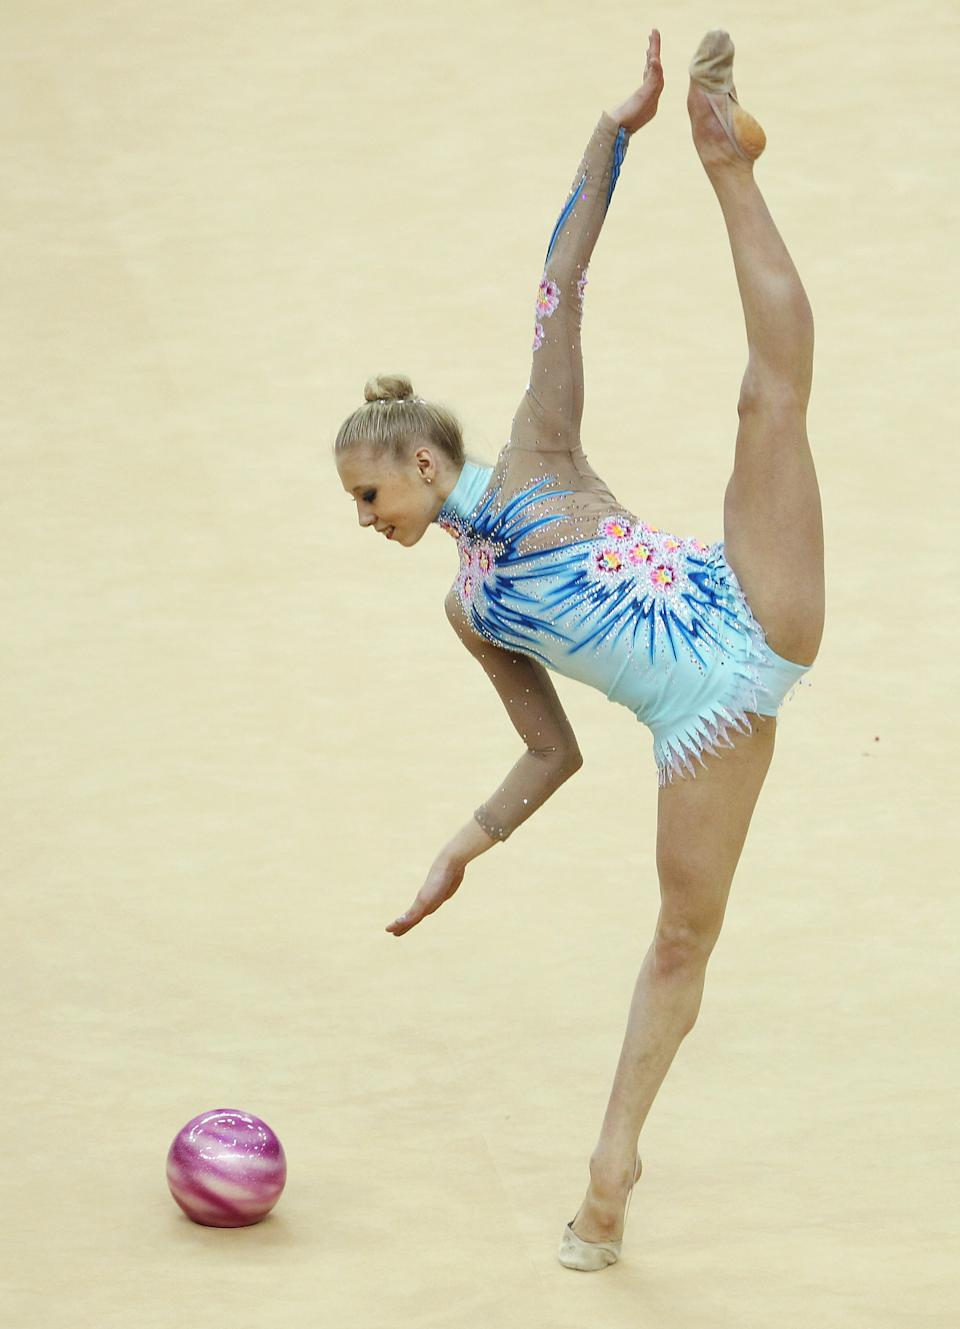 LONDON, ENGLAND - JANUARY 16: Kseniya Moustafaeva of France in action in the Individual All-Around during the FIG Rhythmic Gymnastics Olympic Qualification round at North Greenwich Arena on January 16, 2012 in London, England. (Photo by Ian Walton/Getty Images)